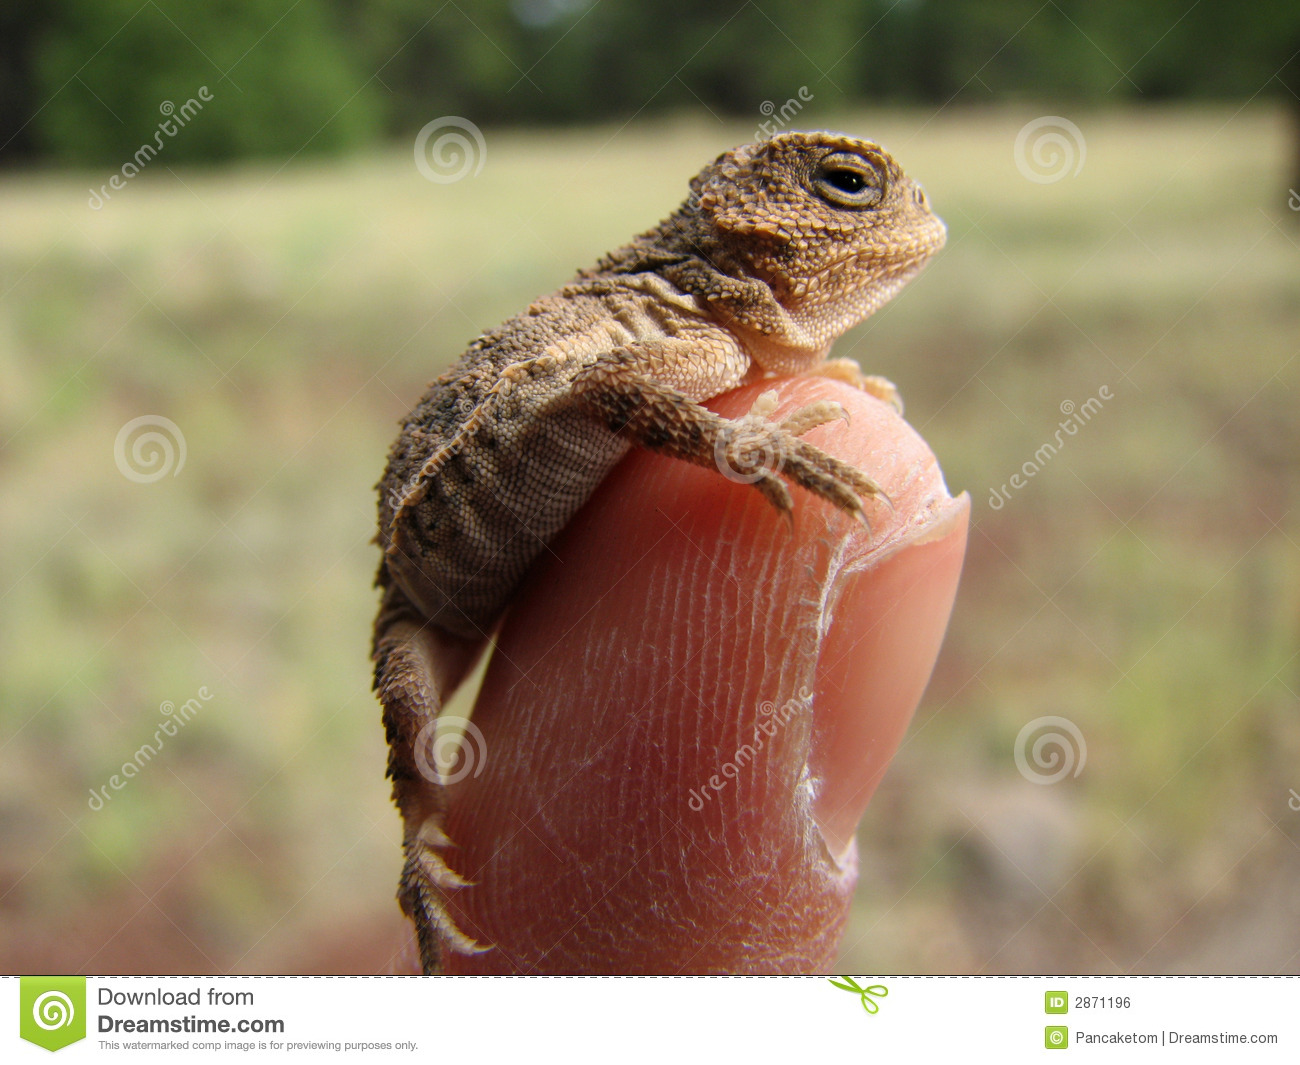 Baby Horned Lizard On Finger Royalty Free Stock Image - Image: 2871196